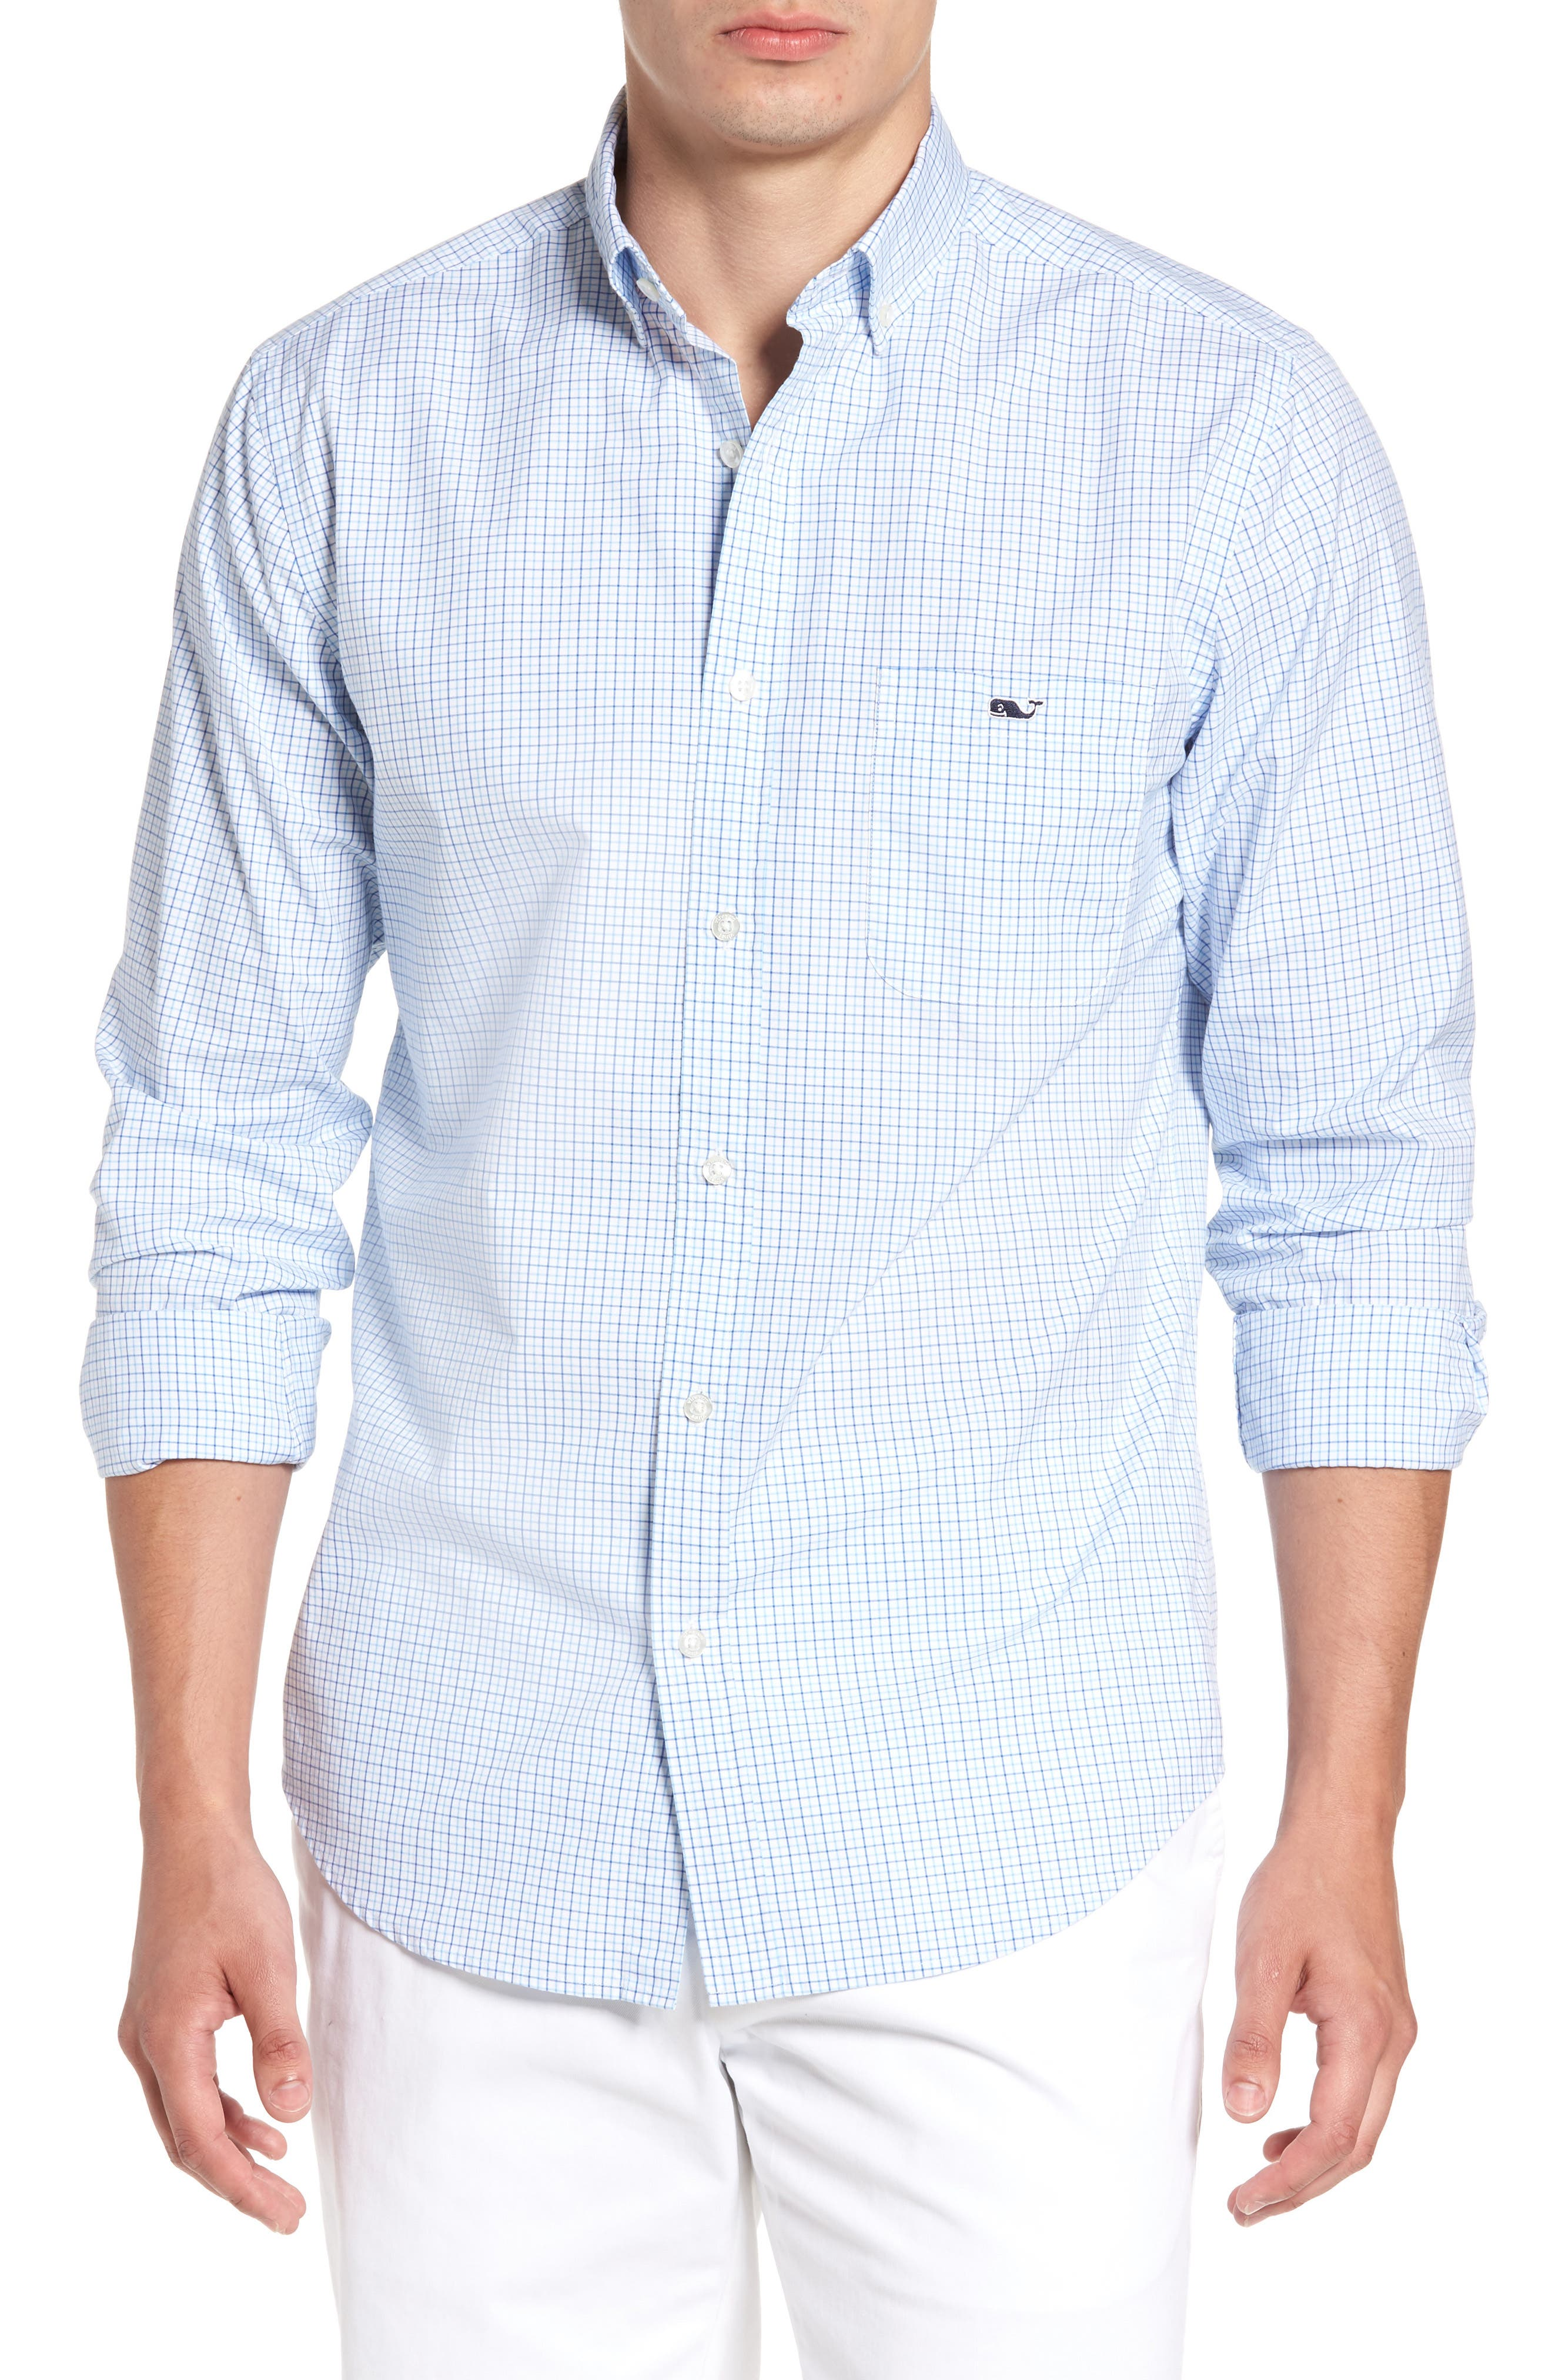 Twin Pond Classic Fit Tattersall Check Sport Shirt,                         Main,                         color, Ocean Breeze